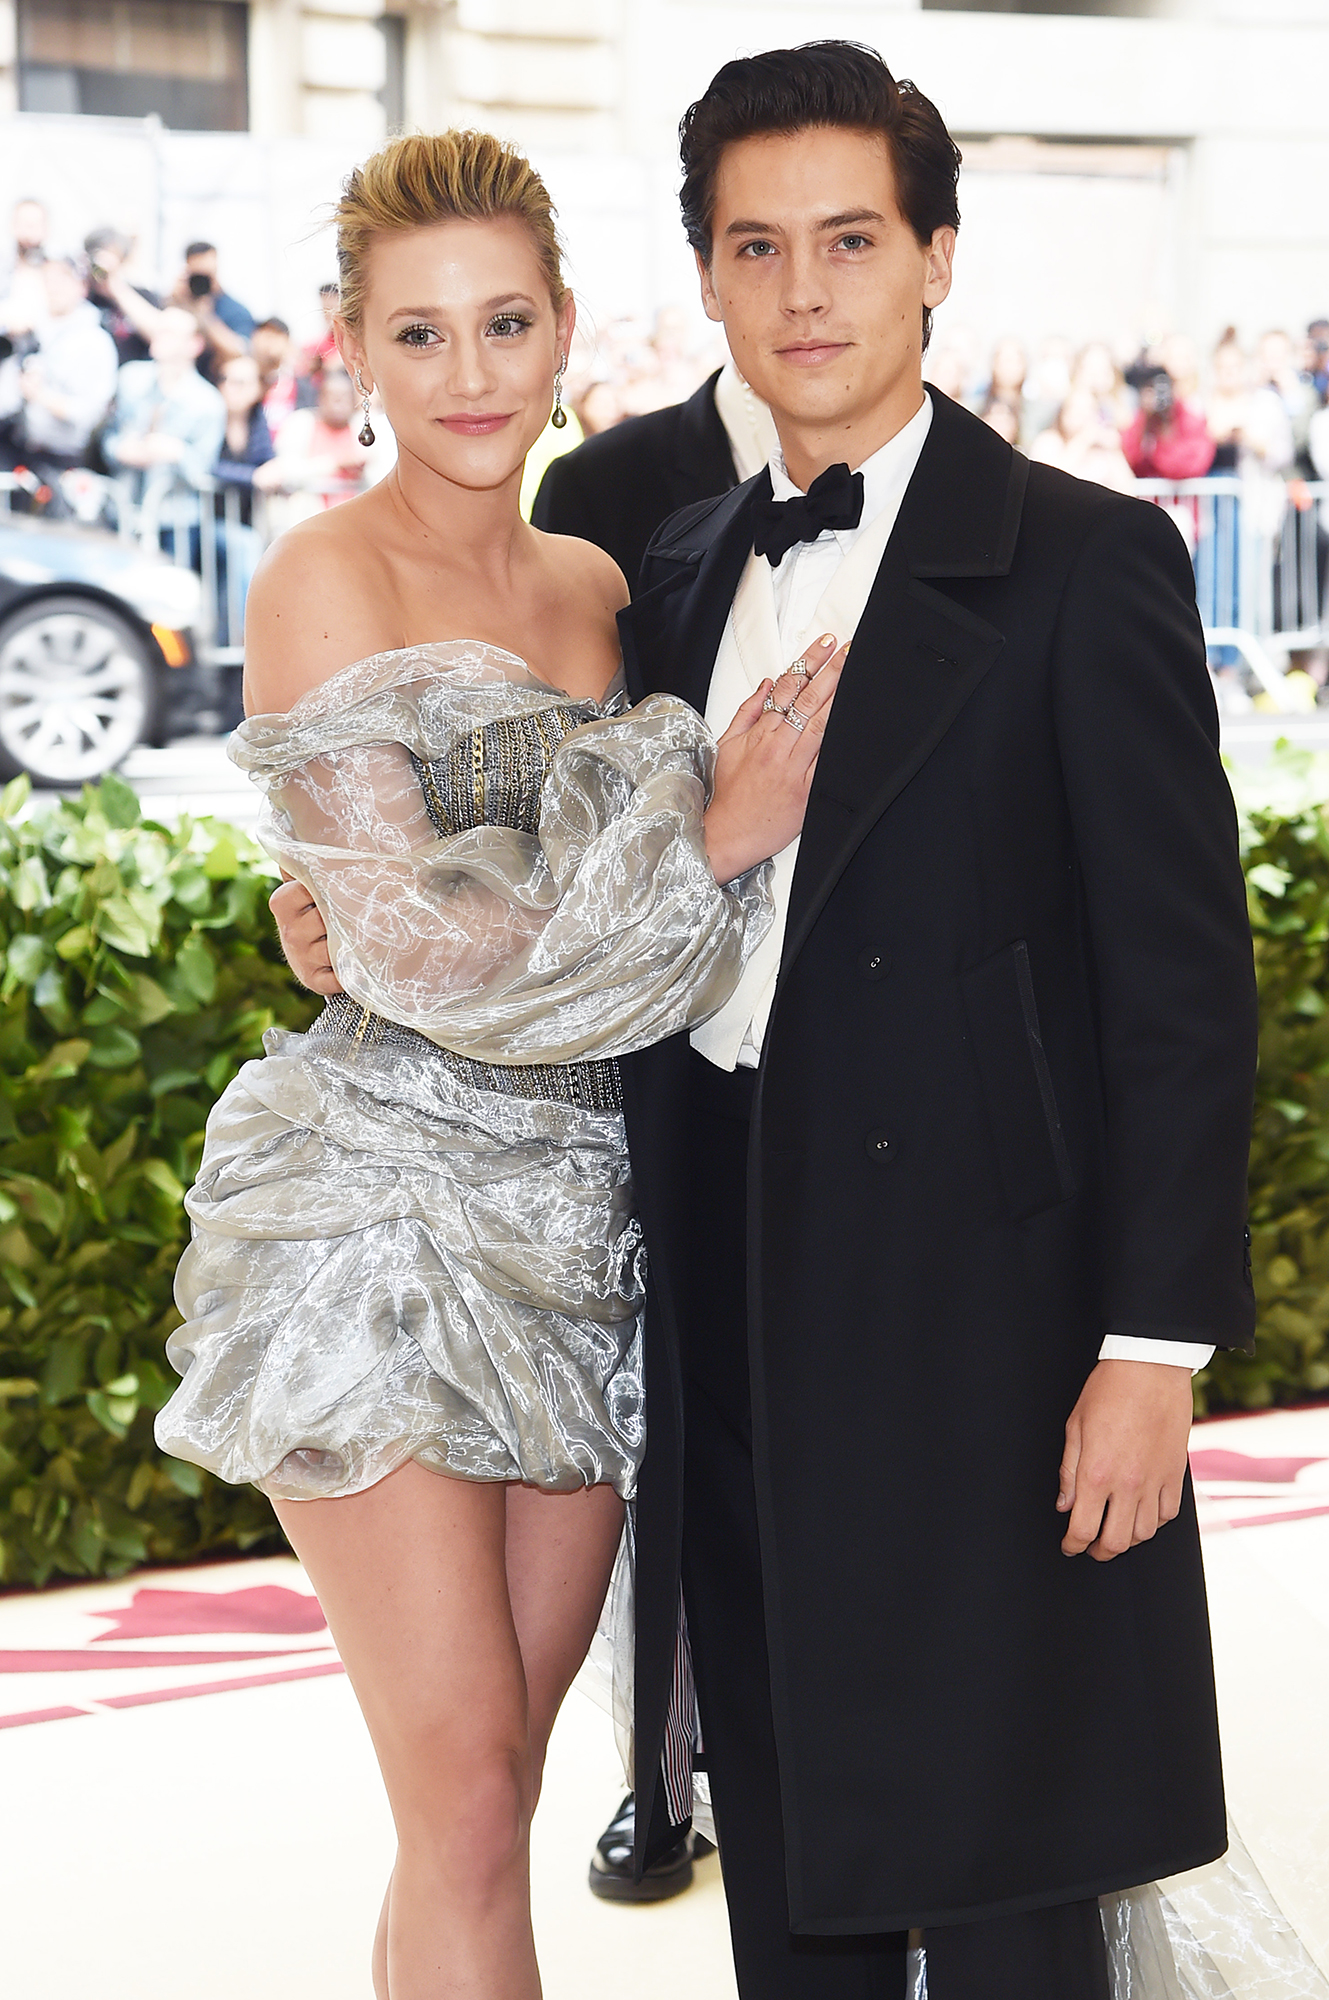 Lili Reinhart and Cole Sprouse Relationship Timeline - Sprouse and Reinhart made their red carpet debut at the Met Gala in May 2018.